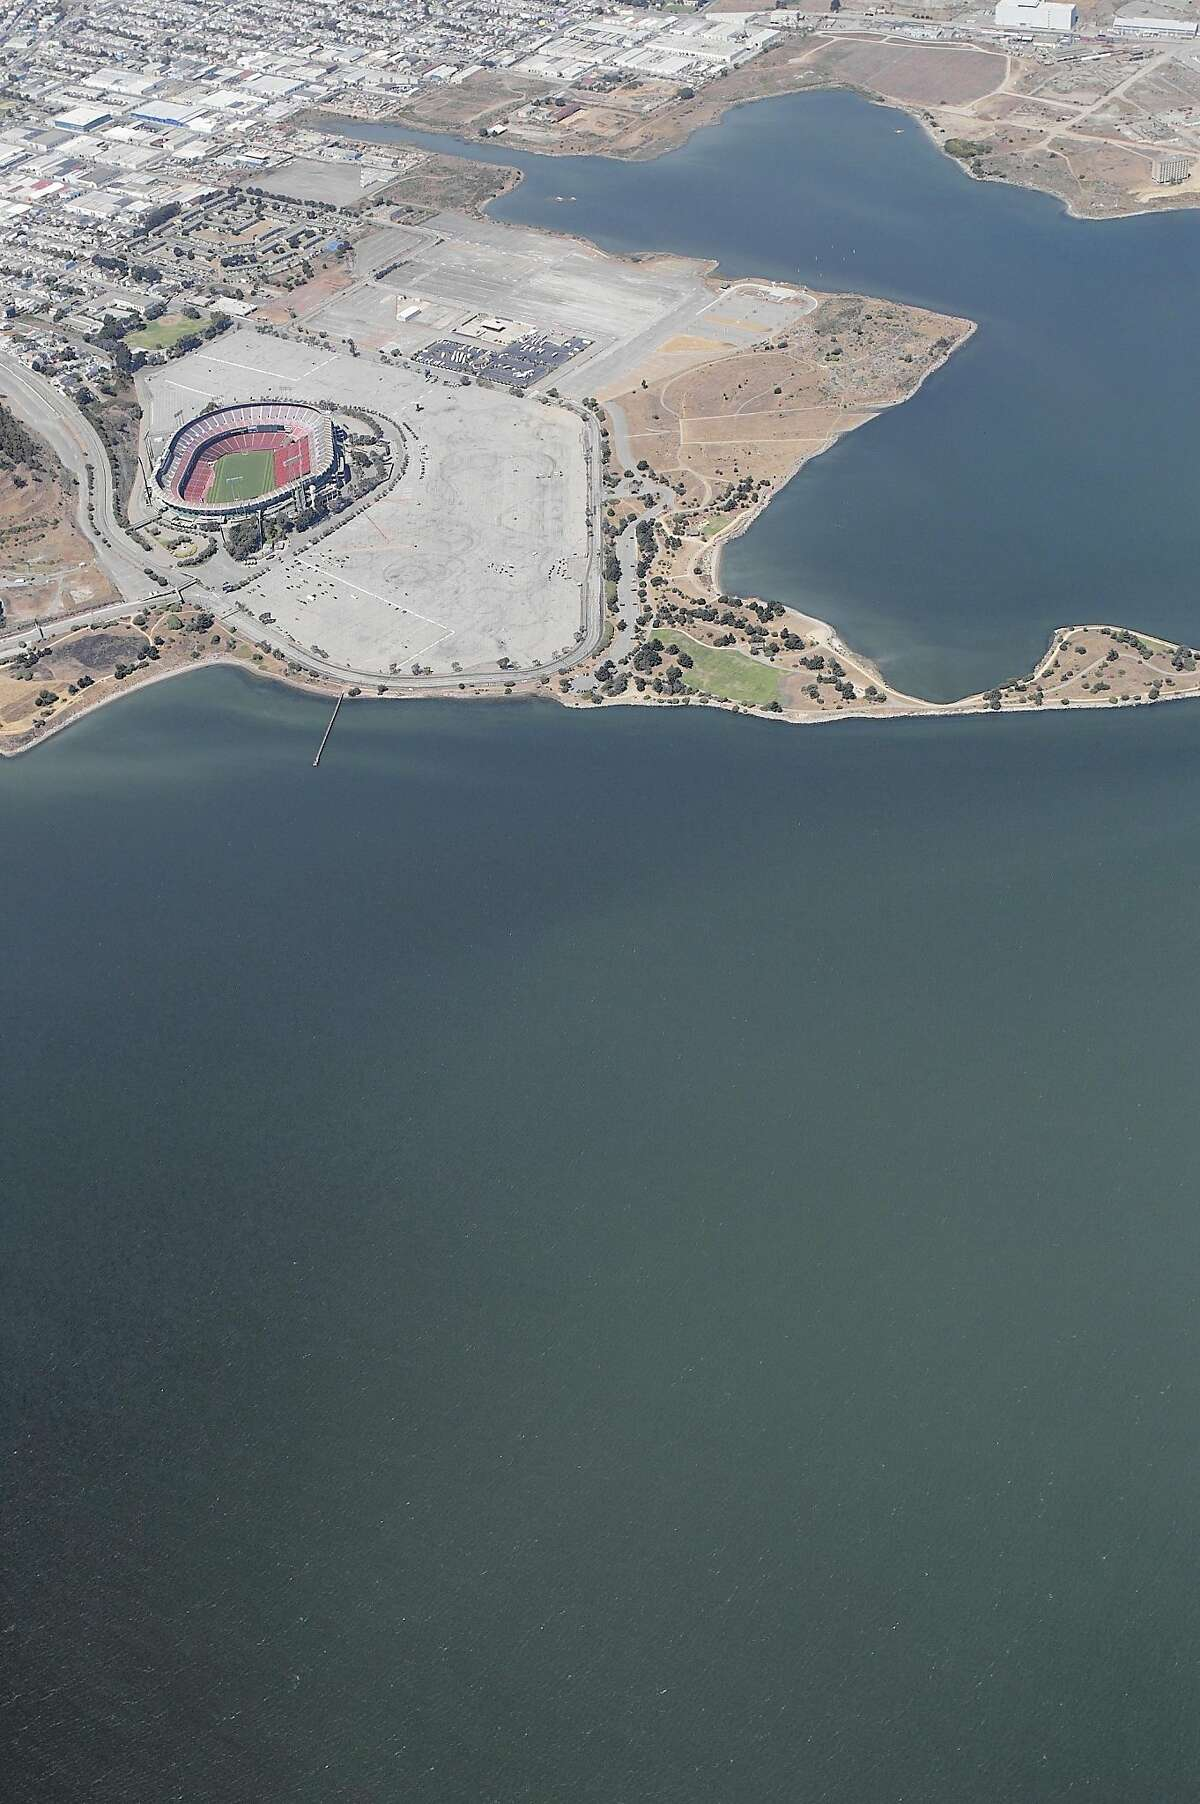 A Realtor is trying to sell a 50,000-square-foot lot near Candlestick Point for $75,000. The only catch? It's literally underwater.